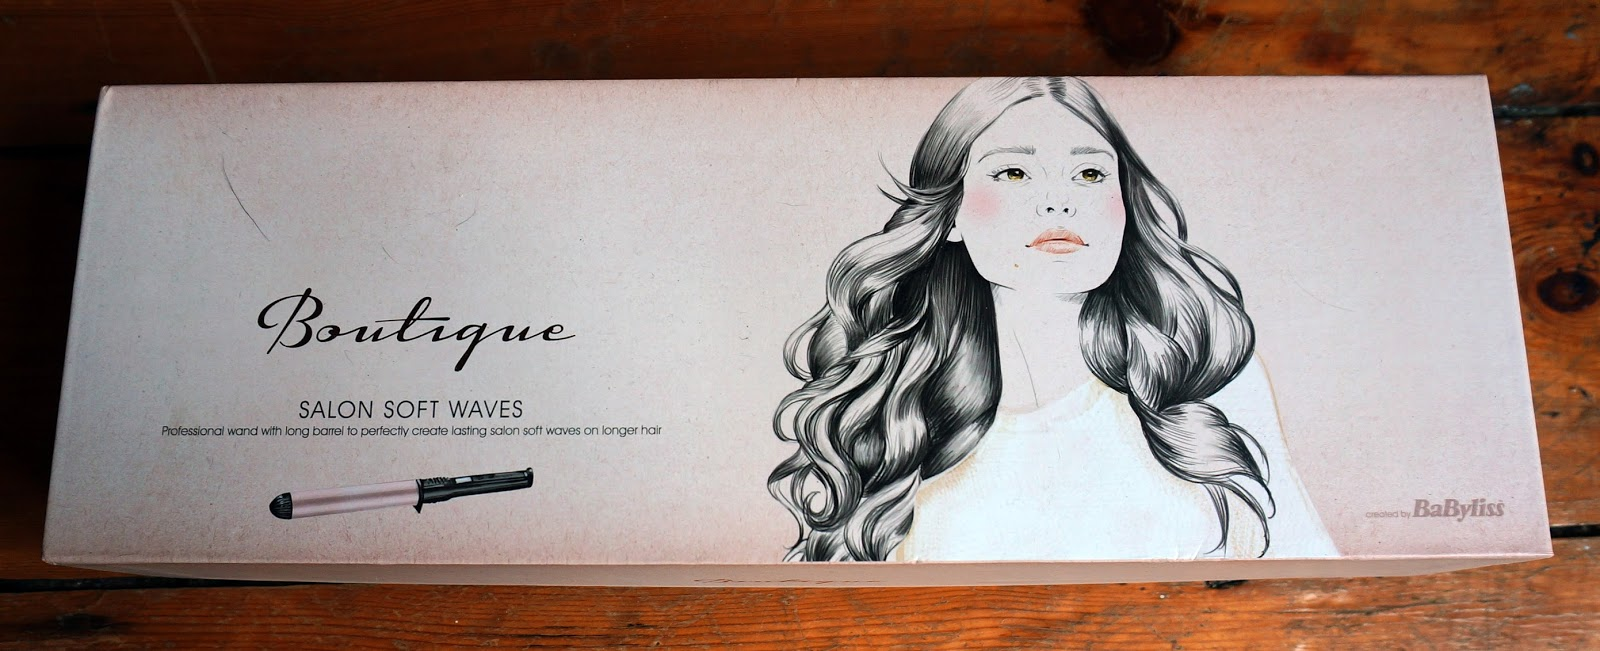 Babyliss Boutique Salon Soft waves in box